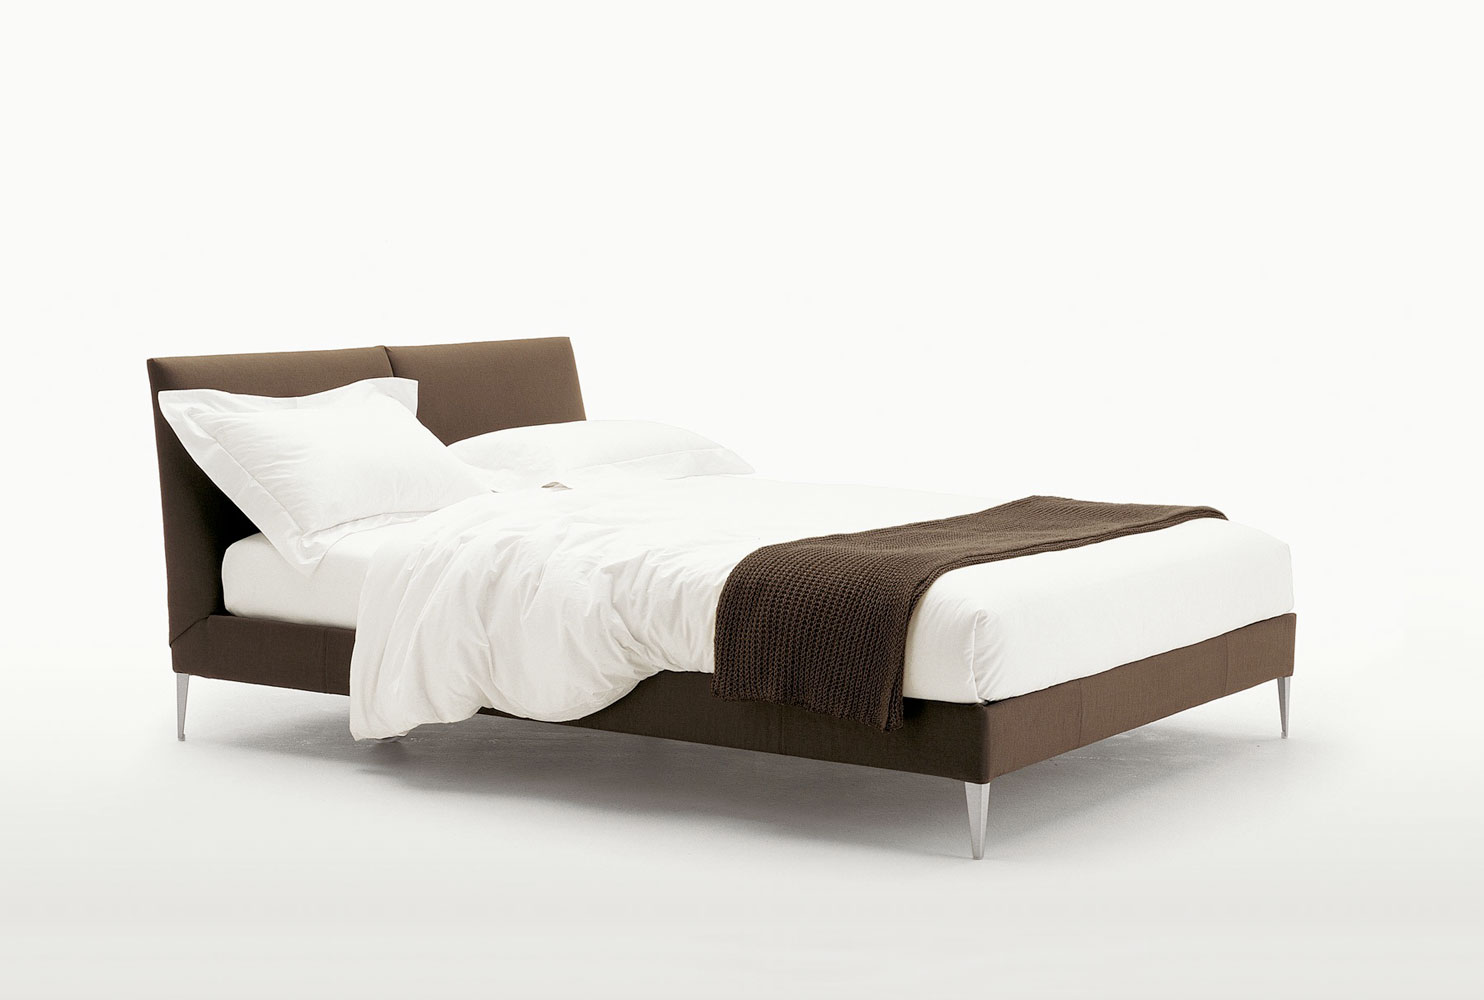 B&b Italia Maxalto Xilos Maxalto B Andb Italia Selene Bed Buy From Campbell Watson Uk